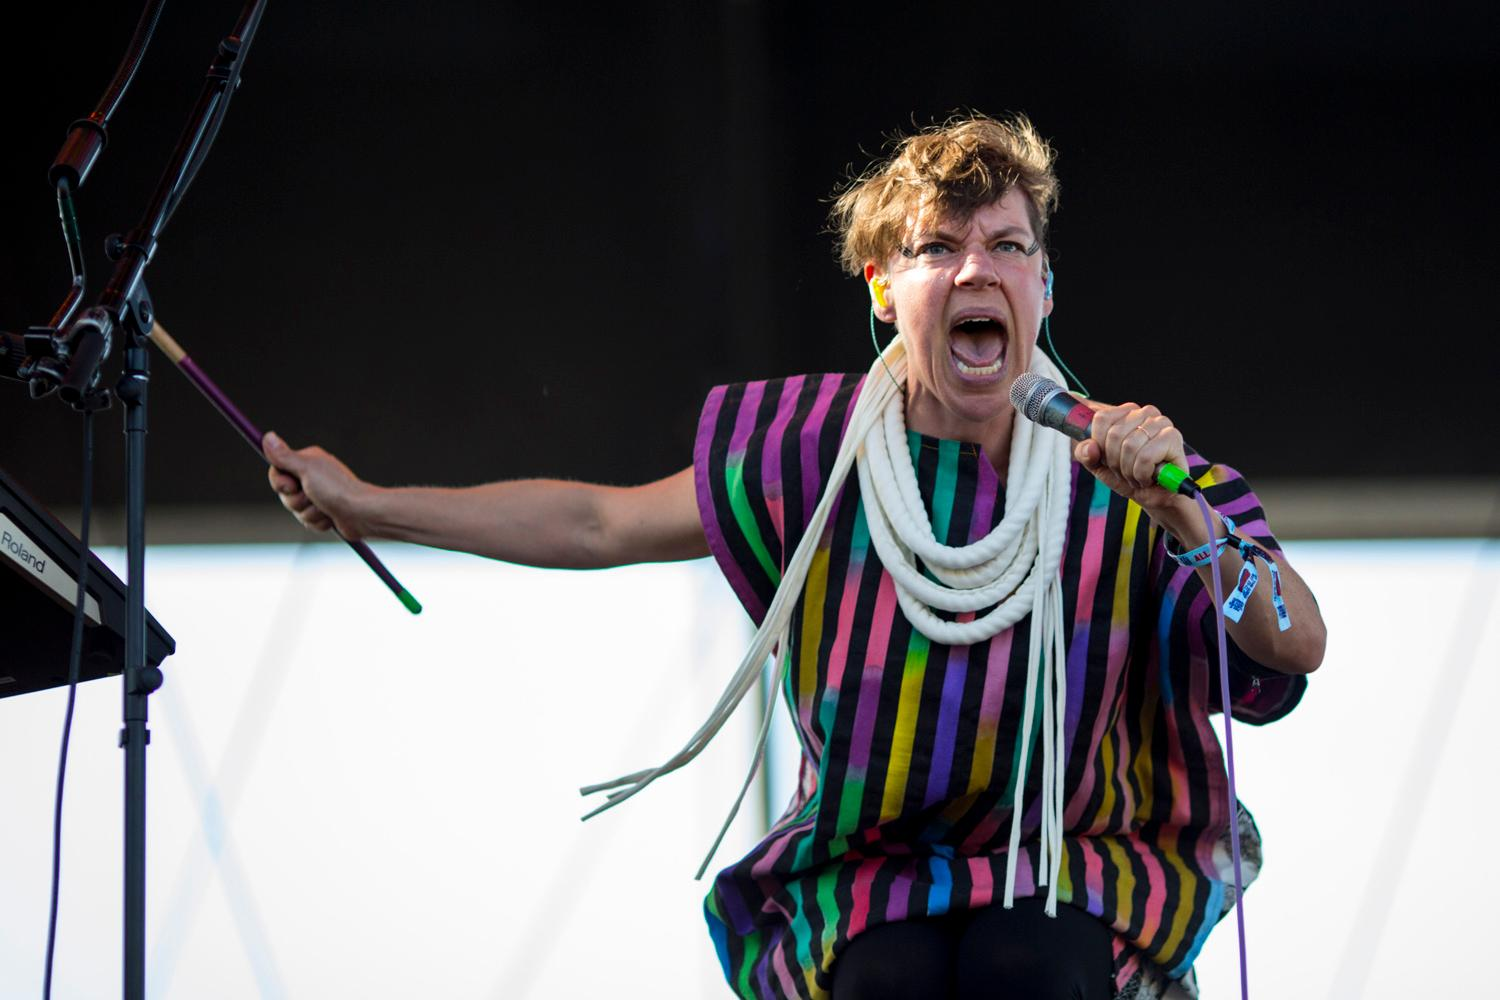 Tune-Yards performs on the third and final day of the Sasquatch! Music Festival. See you next year Sasquatch! (Sy Bean / Seattle Refined)